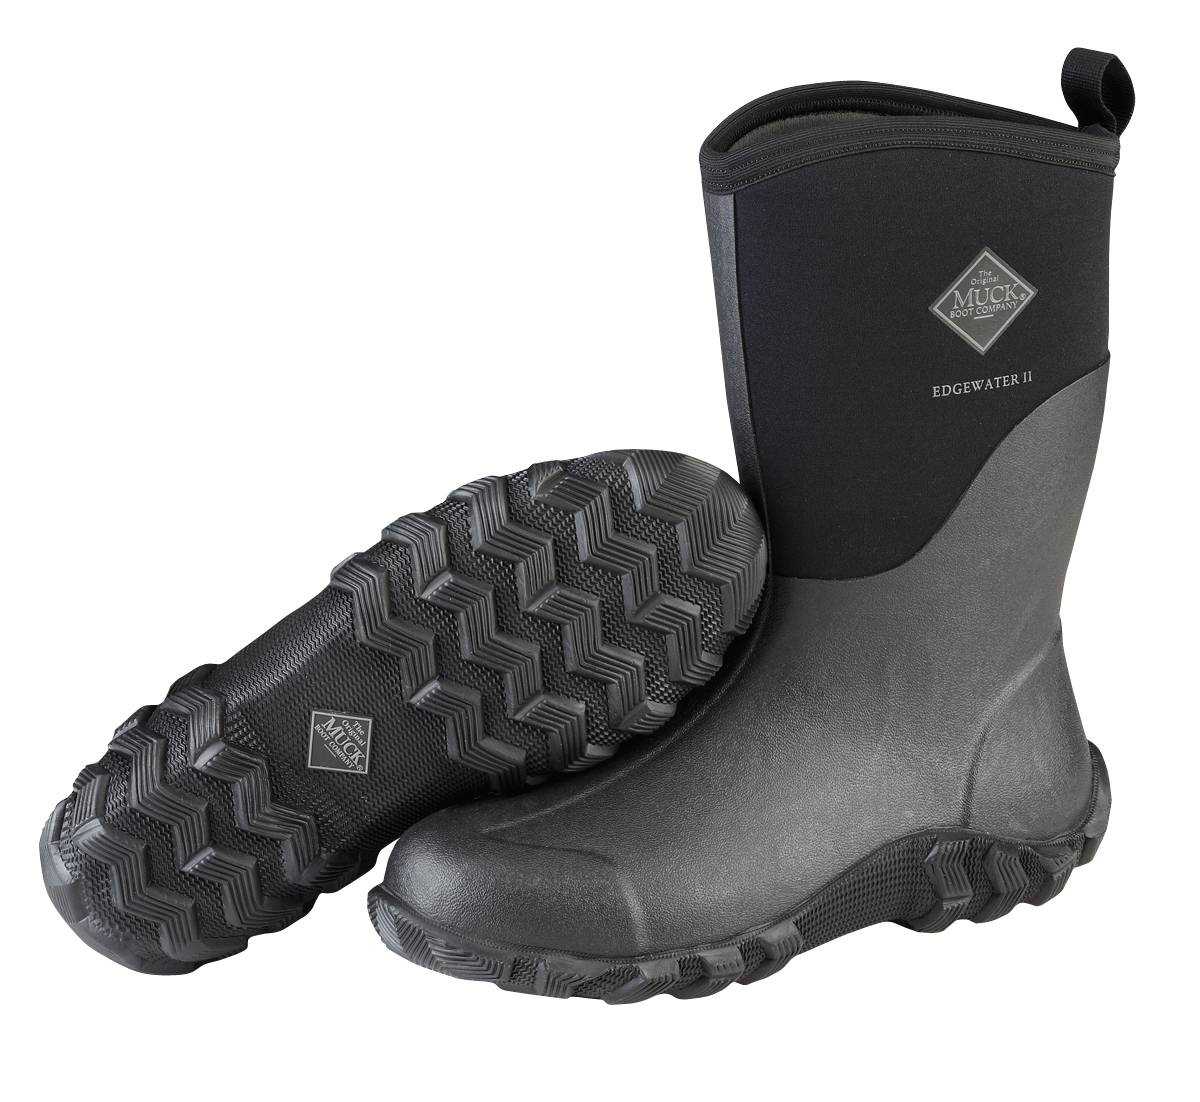 Muck Boots Edgewater II Mid Boot - Unisex - Black